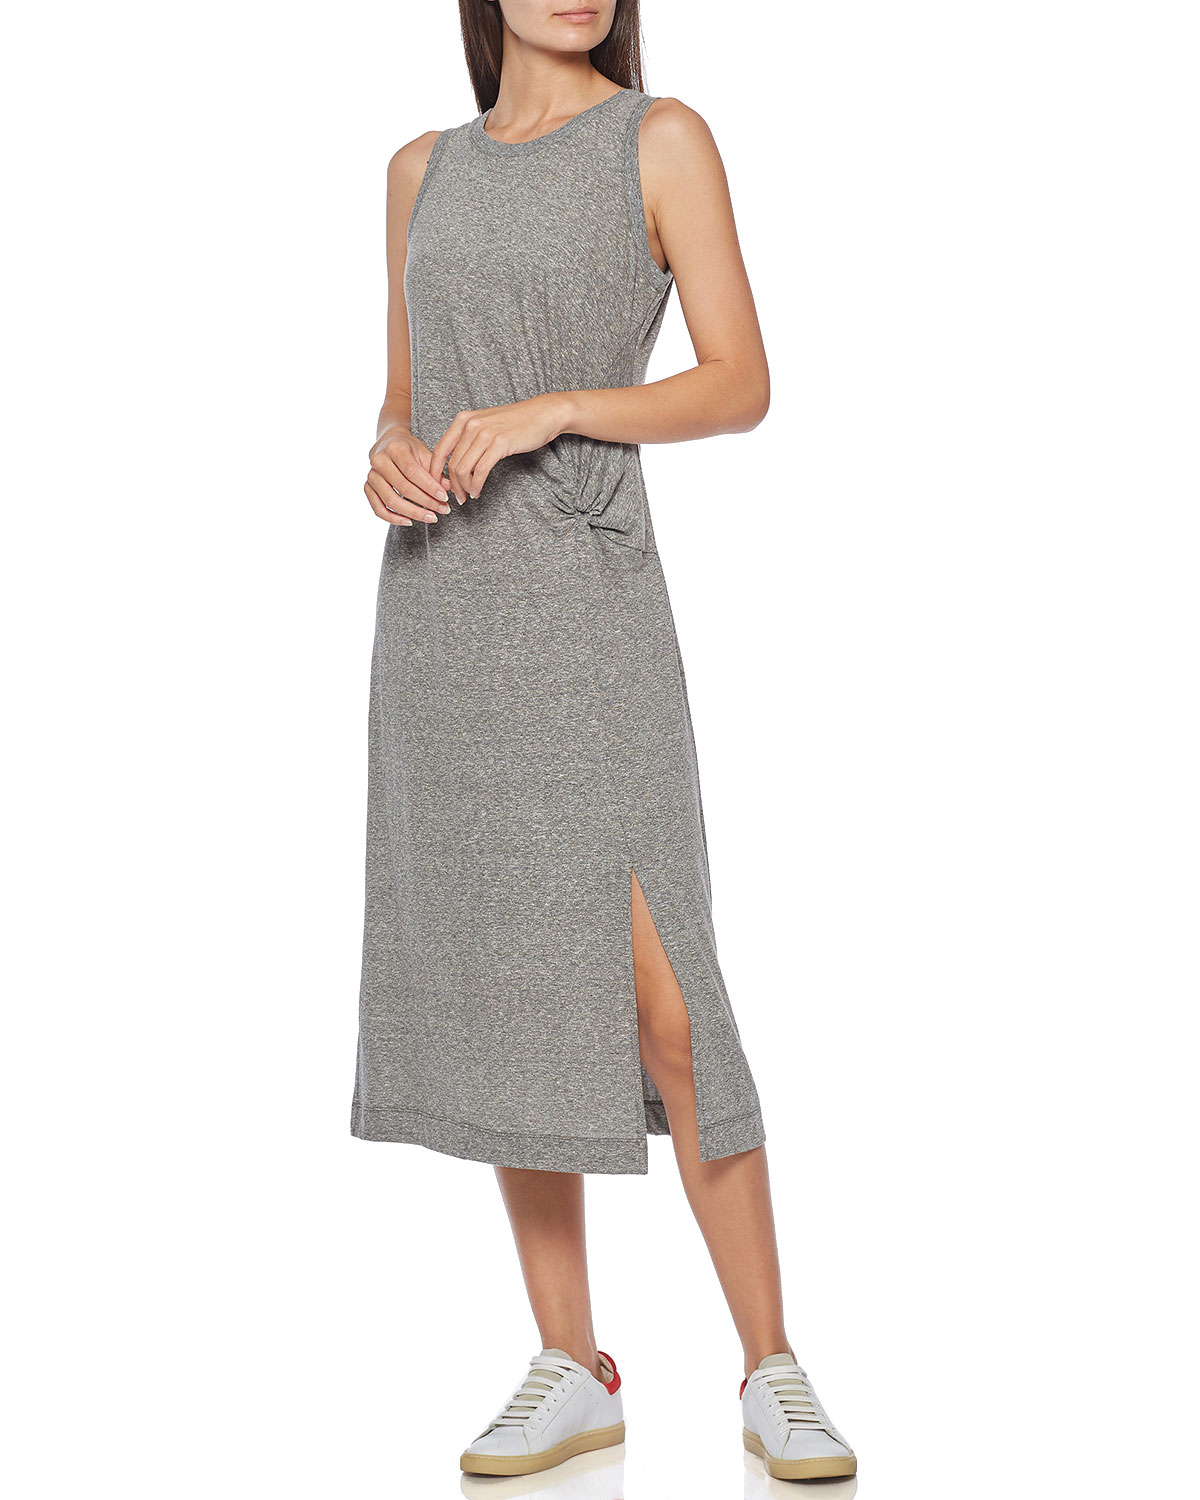 Cantina Dress from Current/Elliot